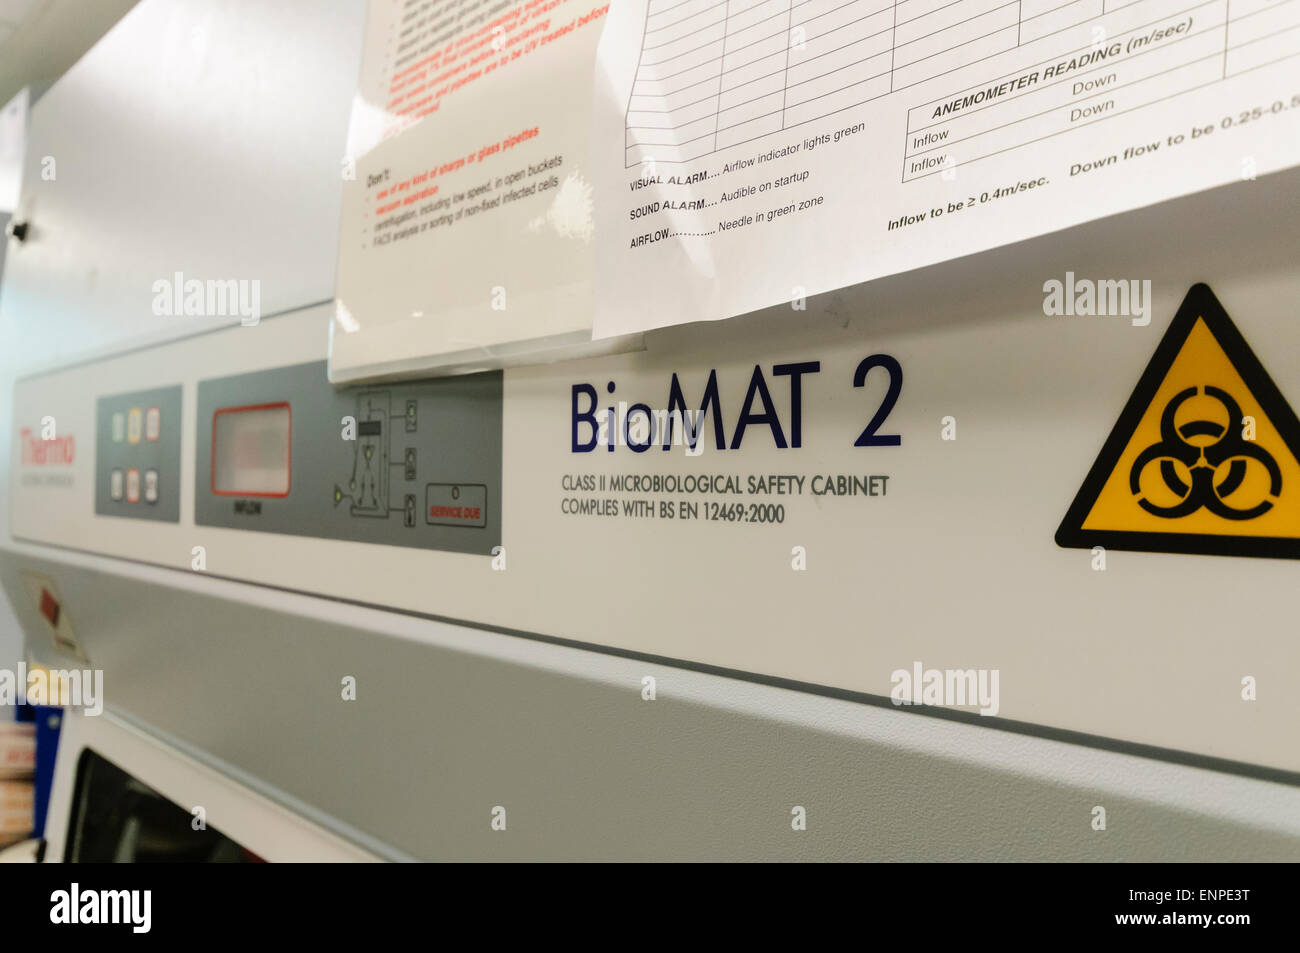 Thermo Electron Corporation BioMat 2 microbiological safety cabinet in a research laboratory. - Stock Image